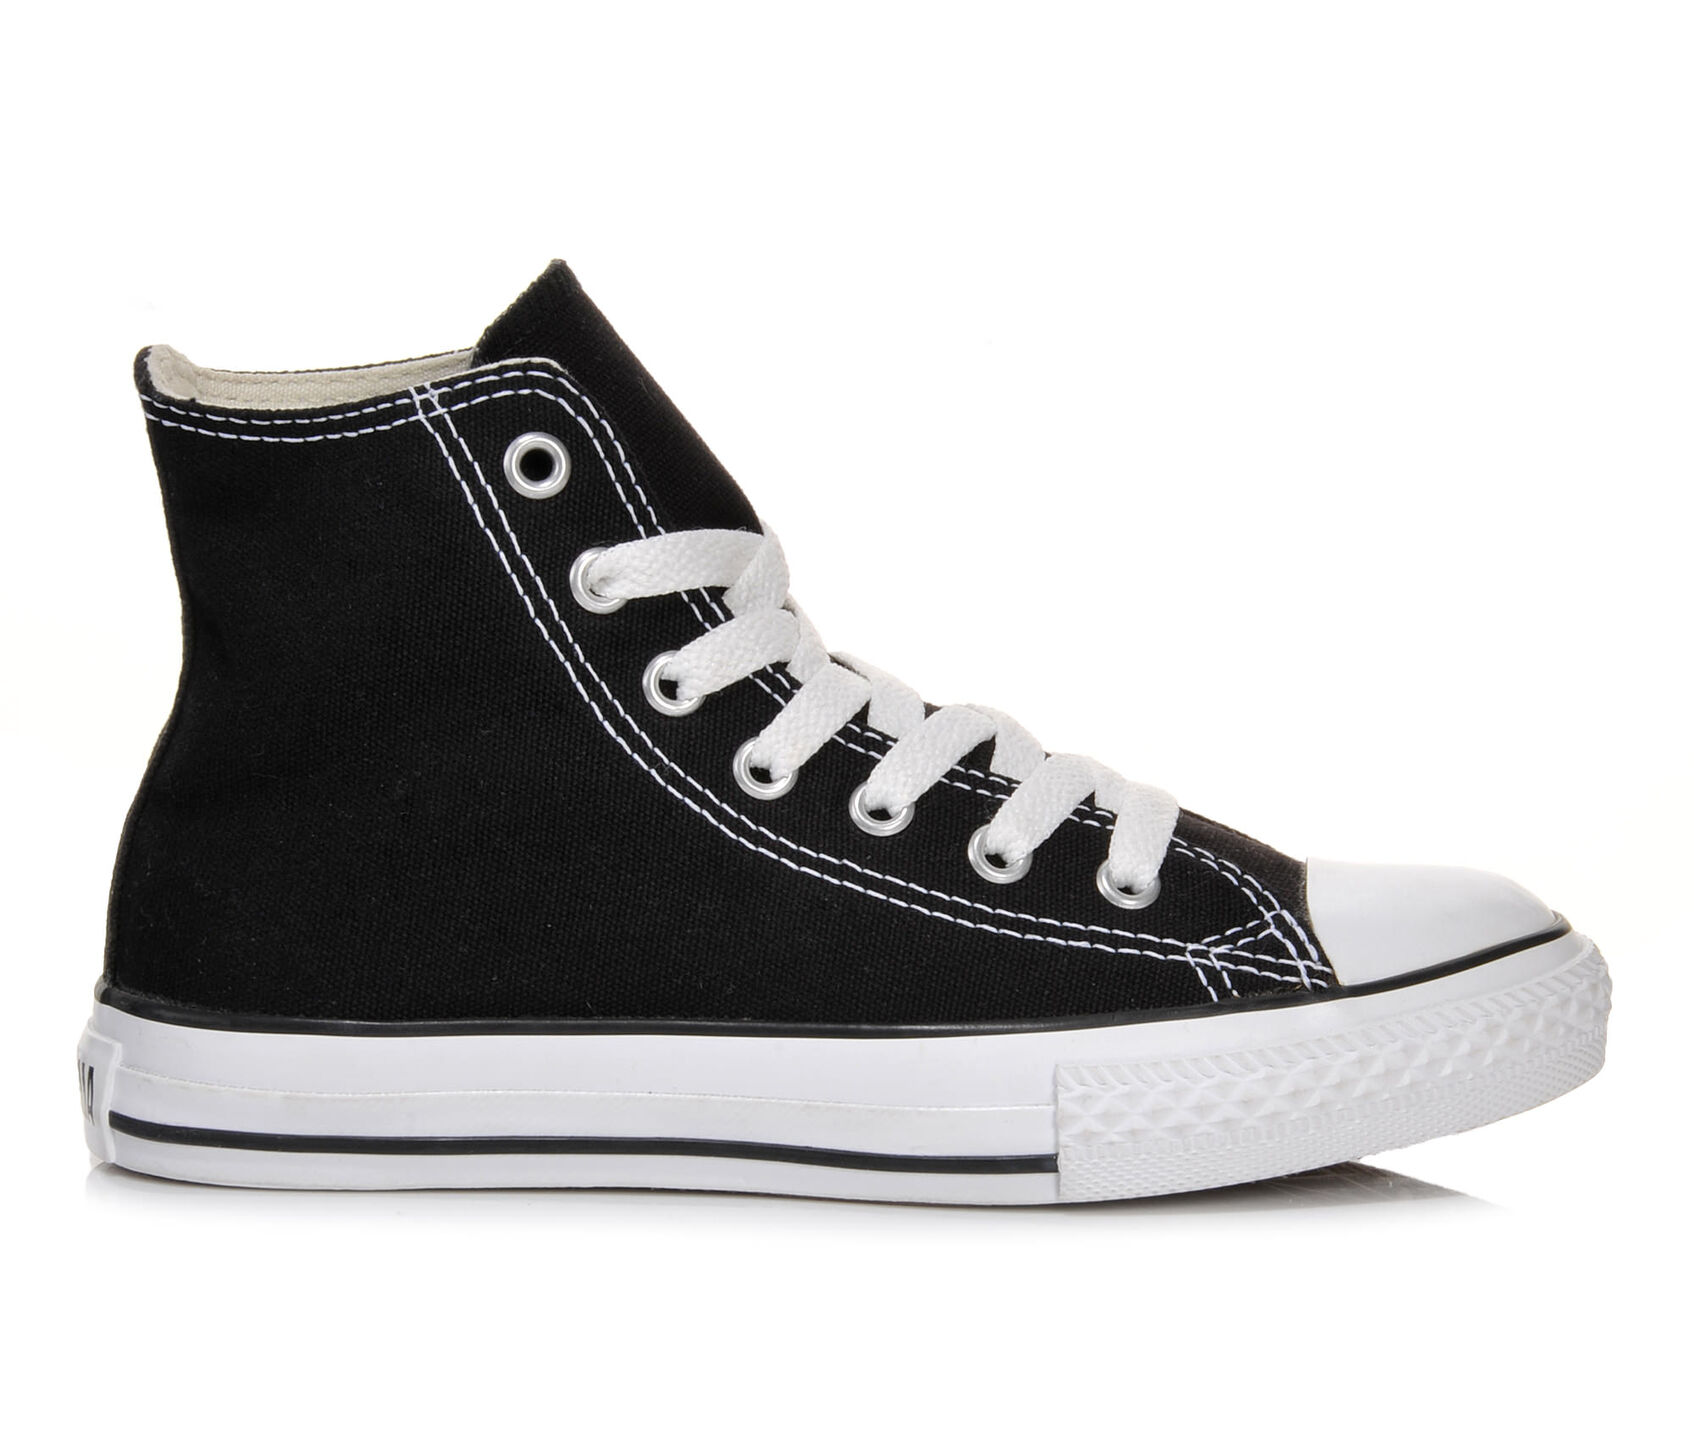 14509c39b167 ... Converse Little Kid Chuck Taylor All Star Hi High Top Sneakers.  Carousel Controls Previous